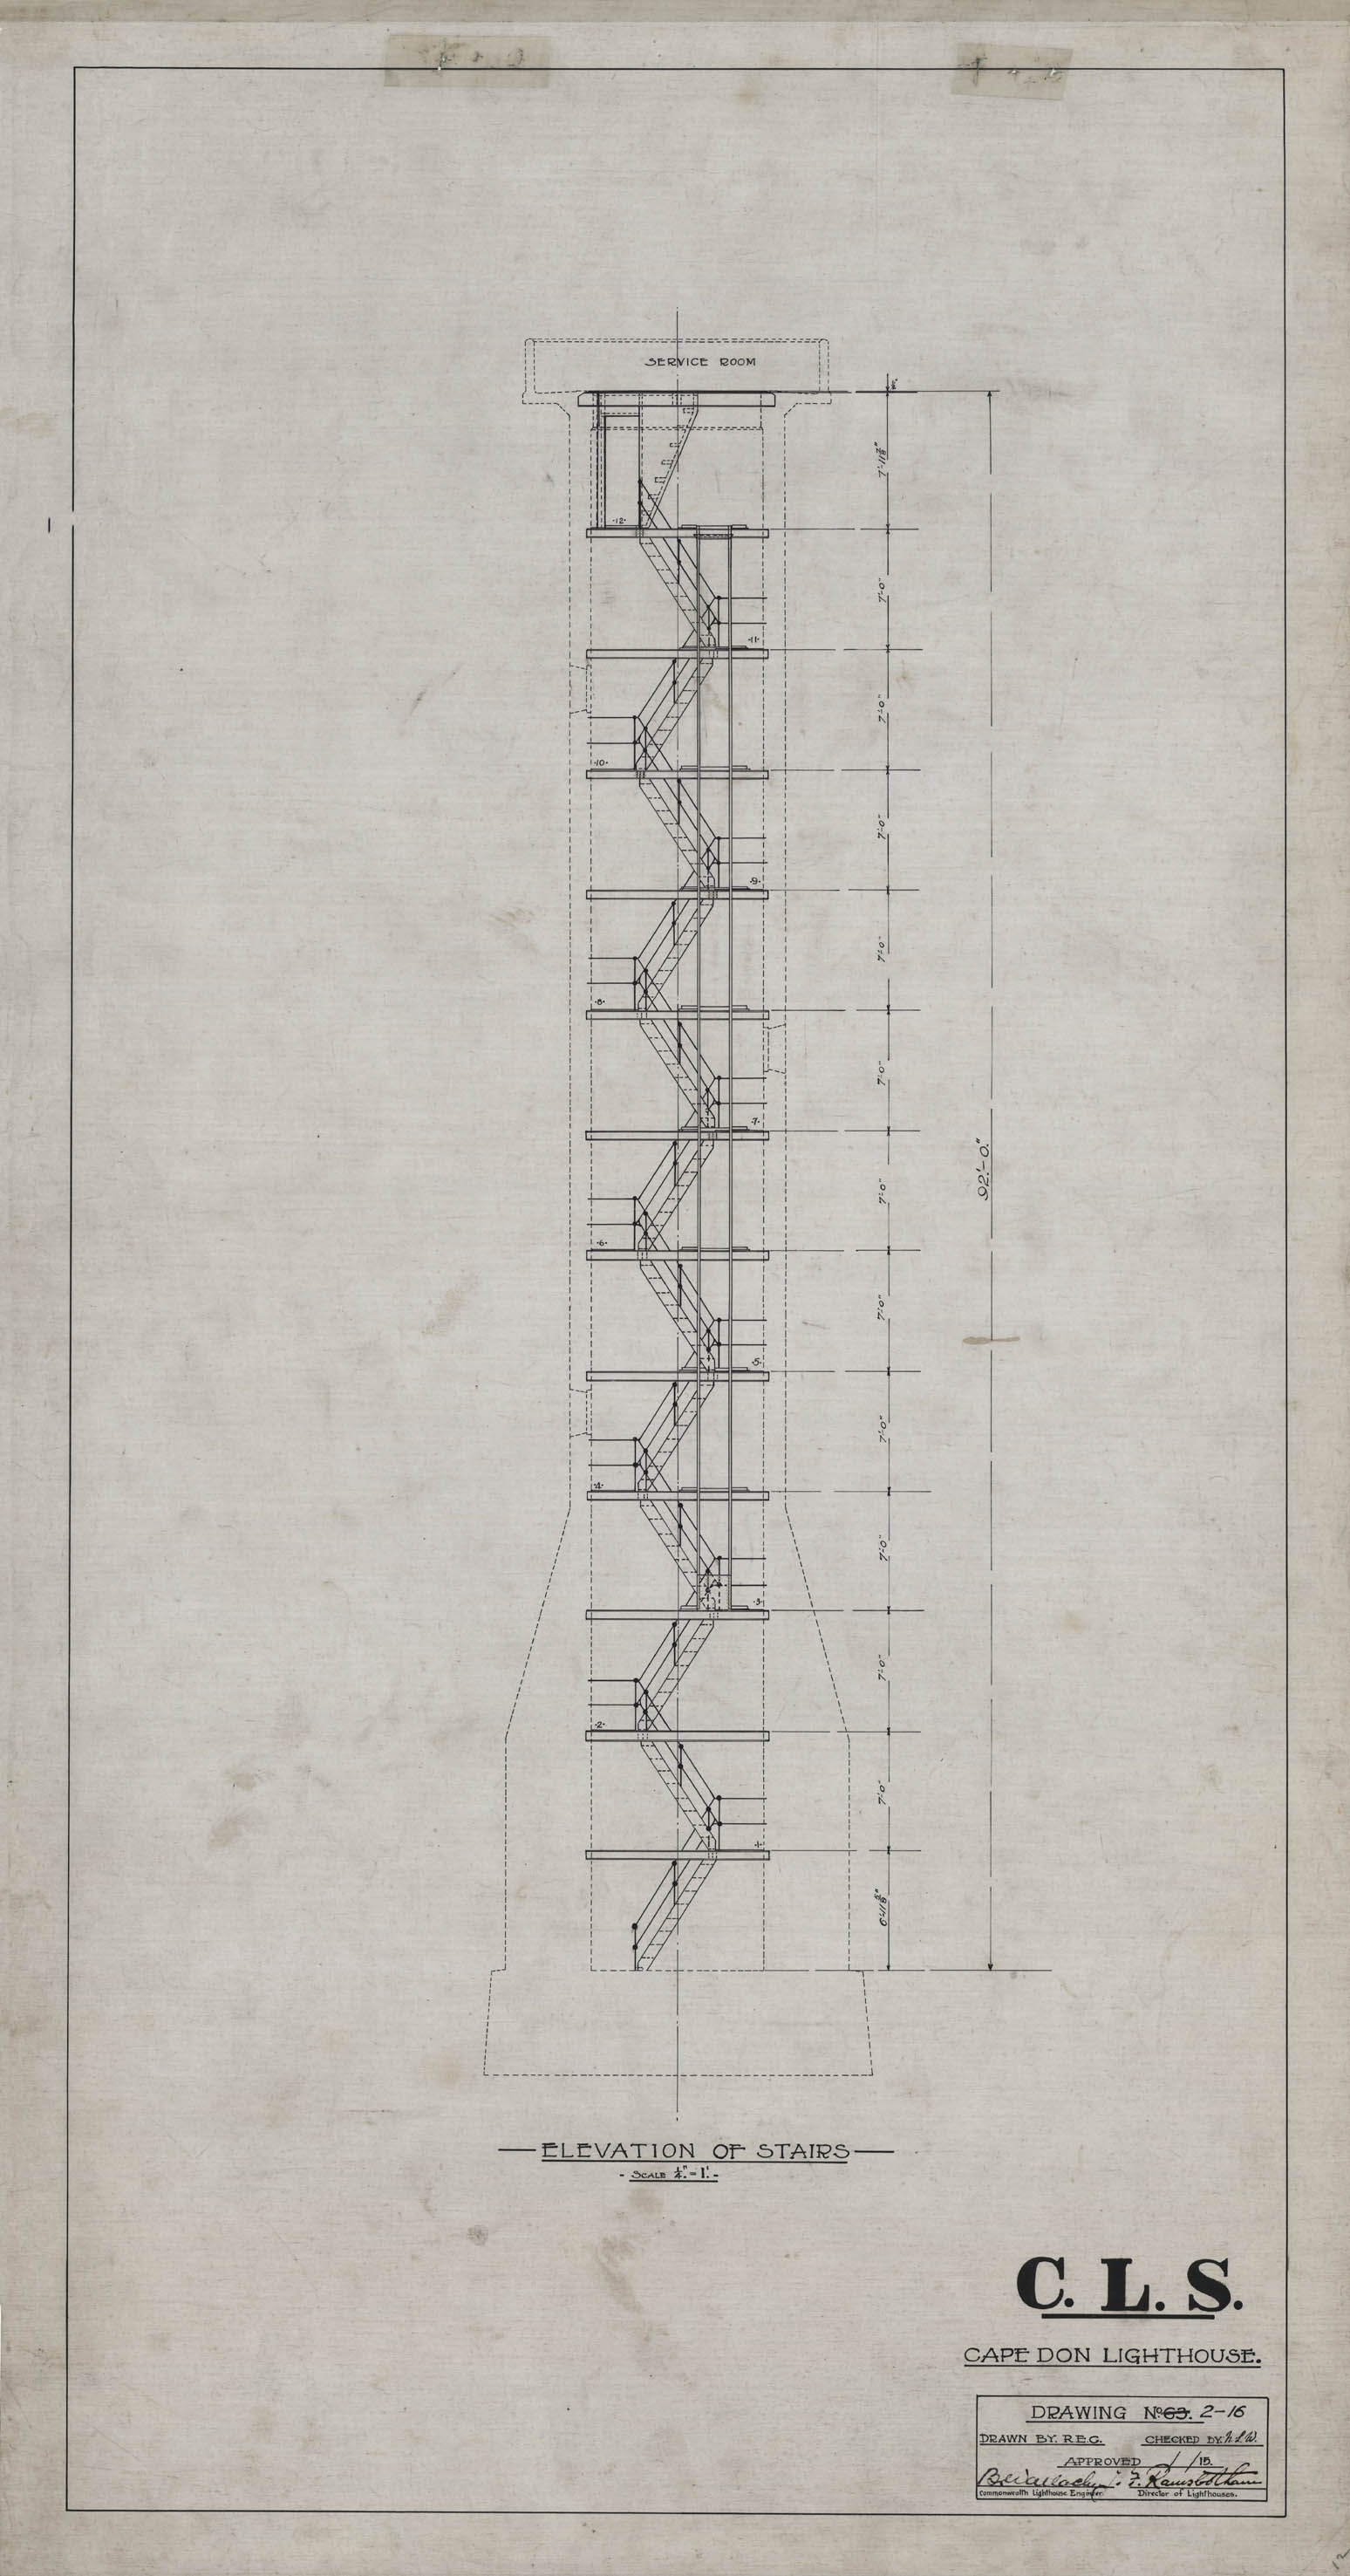 File:Cape Don Light - Plans - Stairs elevation, 1915 jpg - Wikimedia